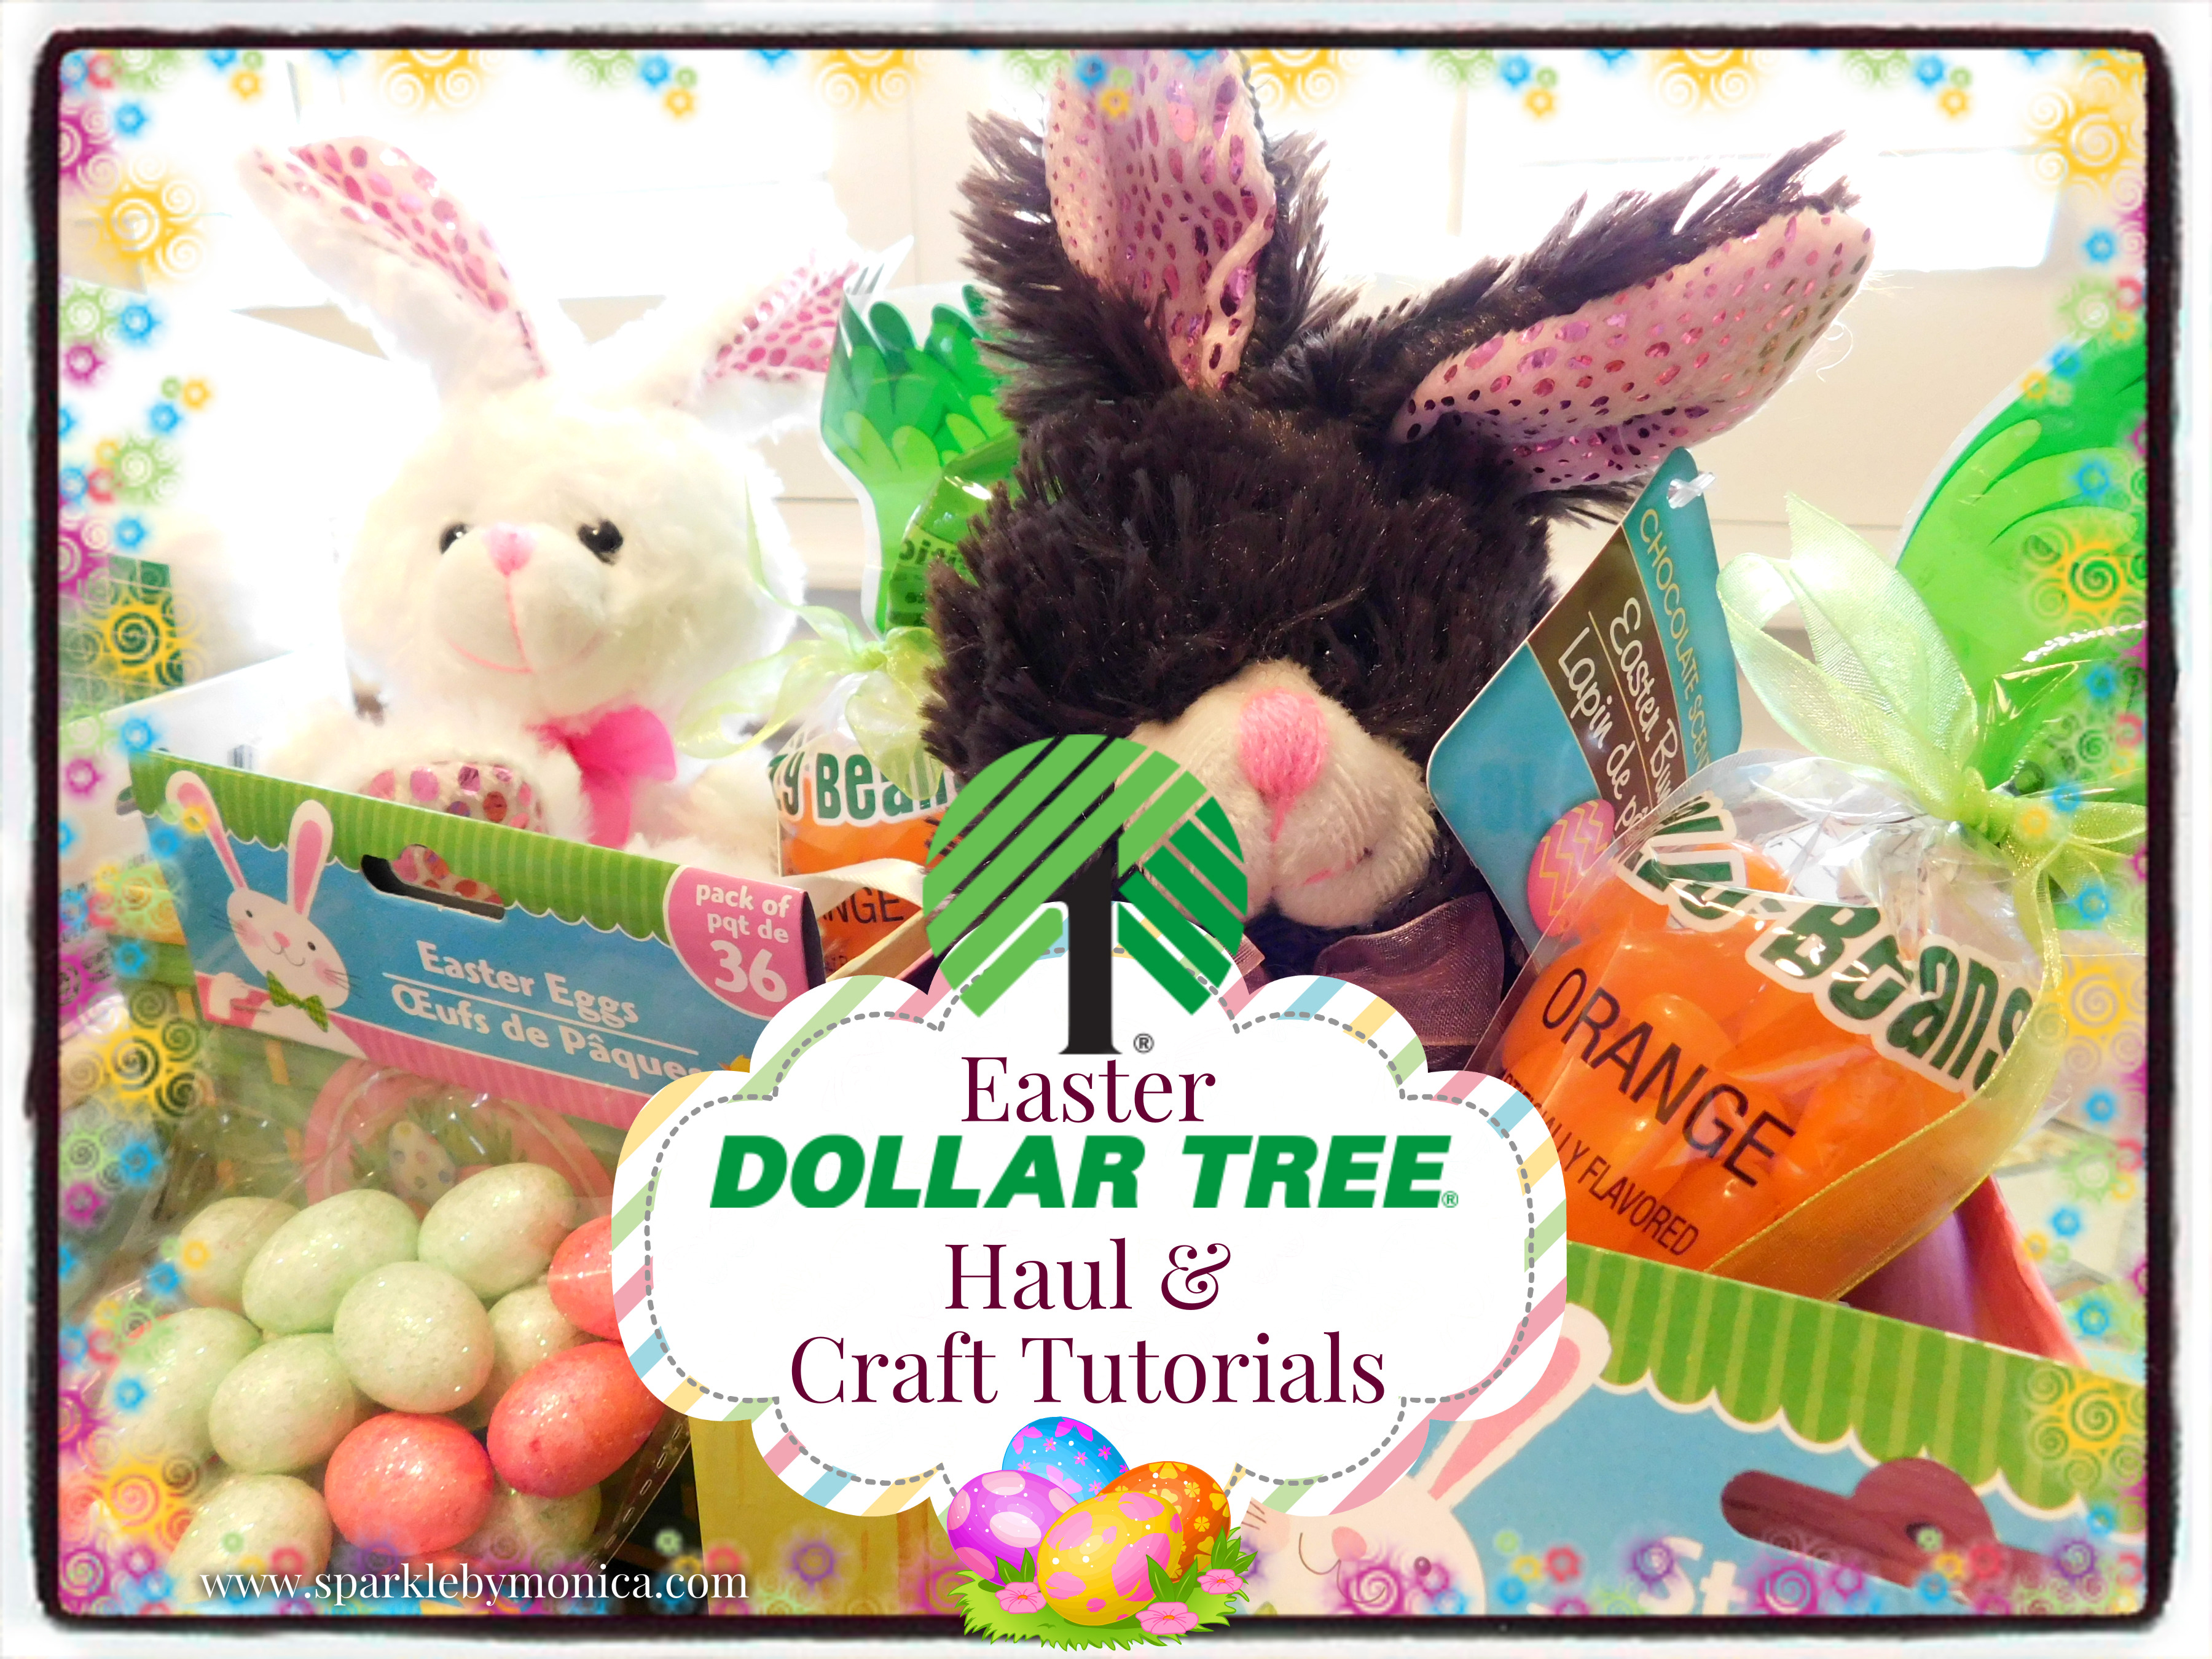 Dollar Tree Easter Haul And Craft Tutorials With Video